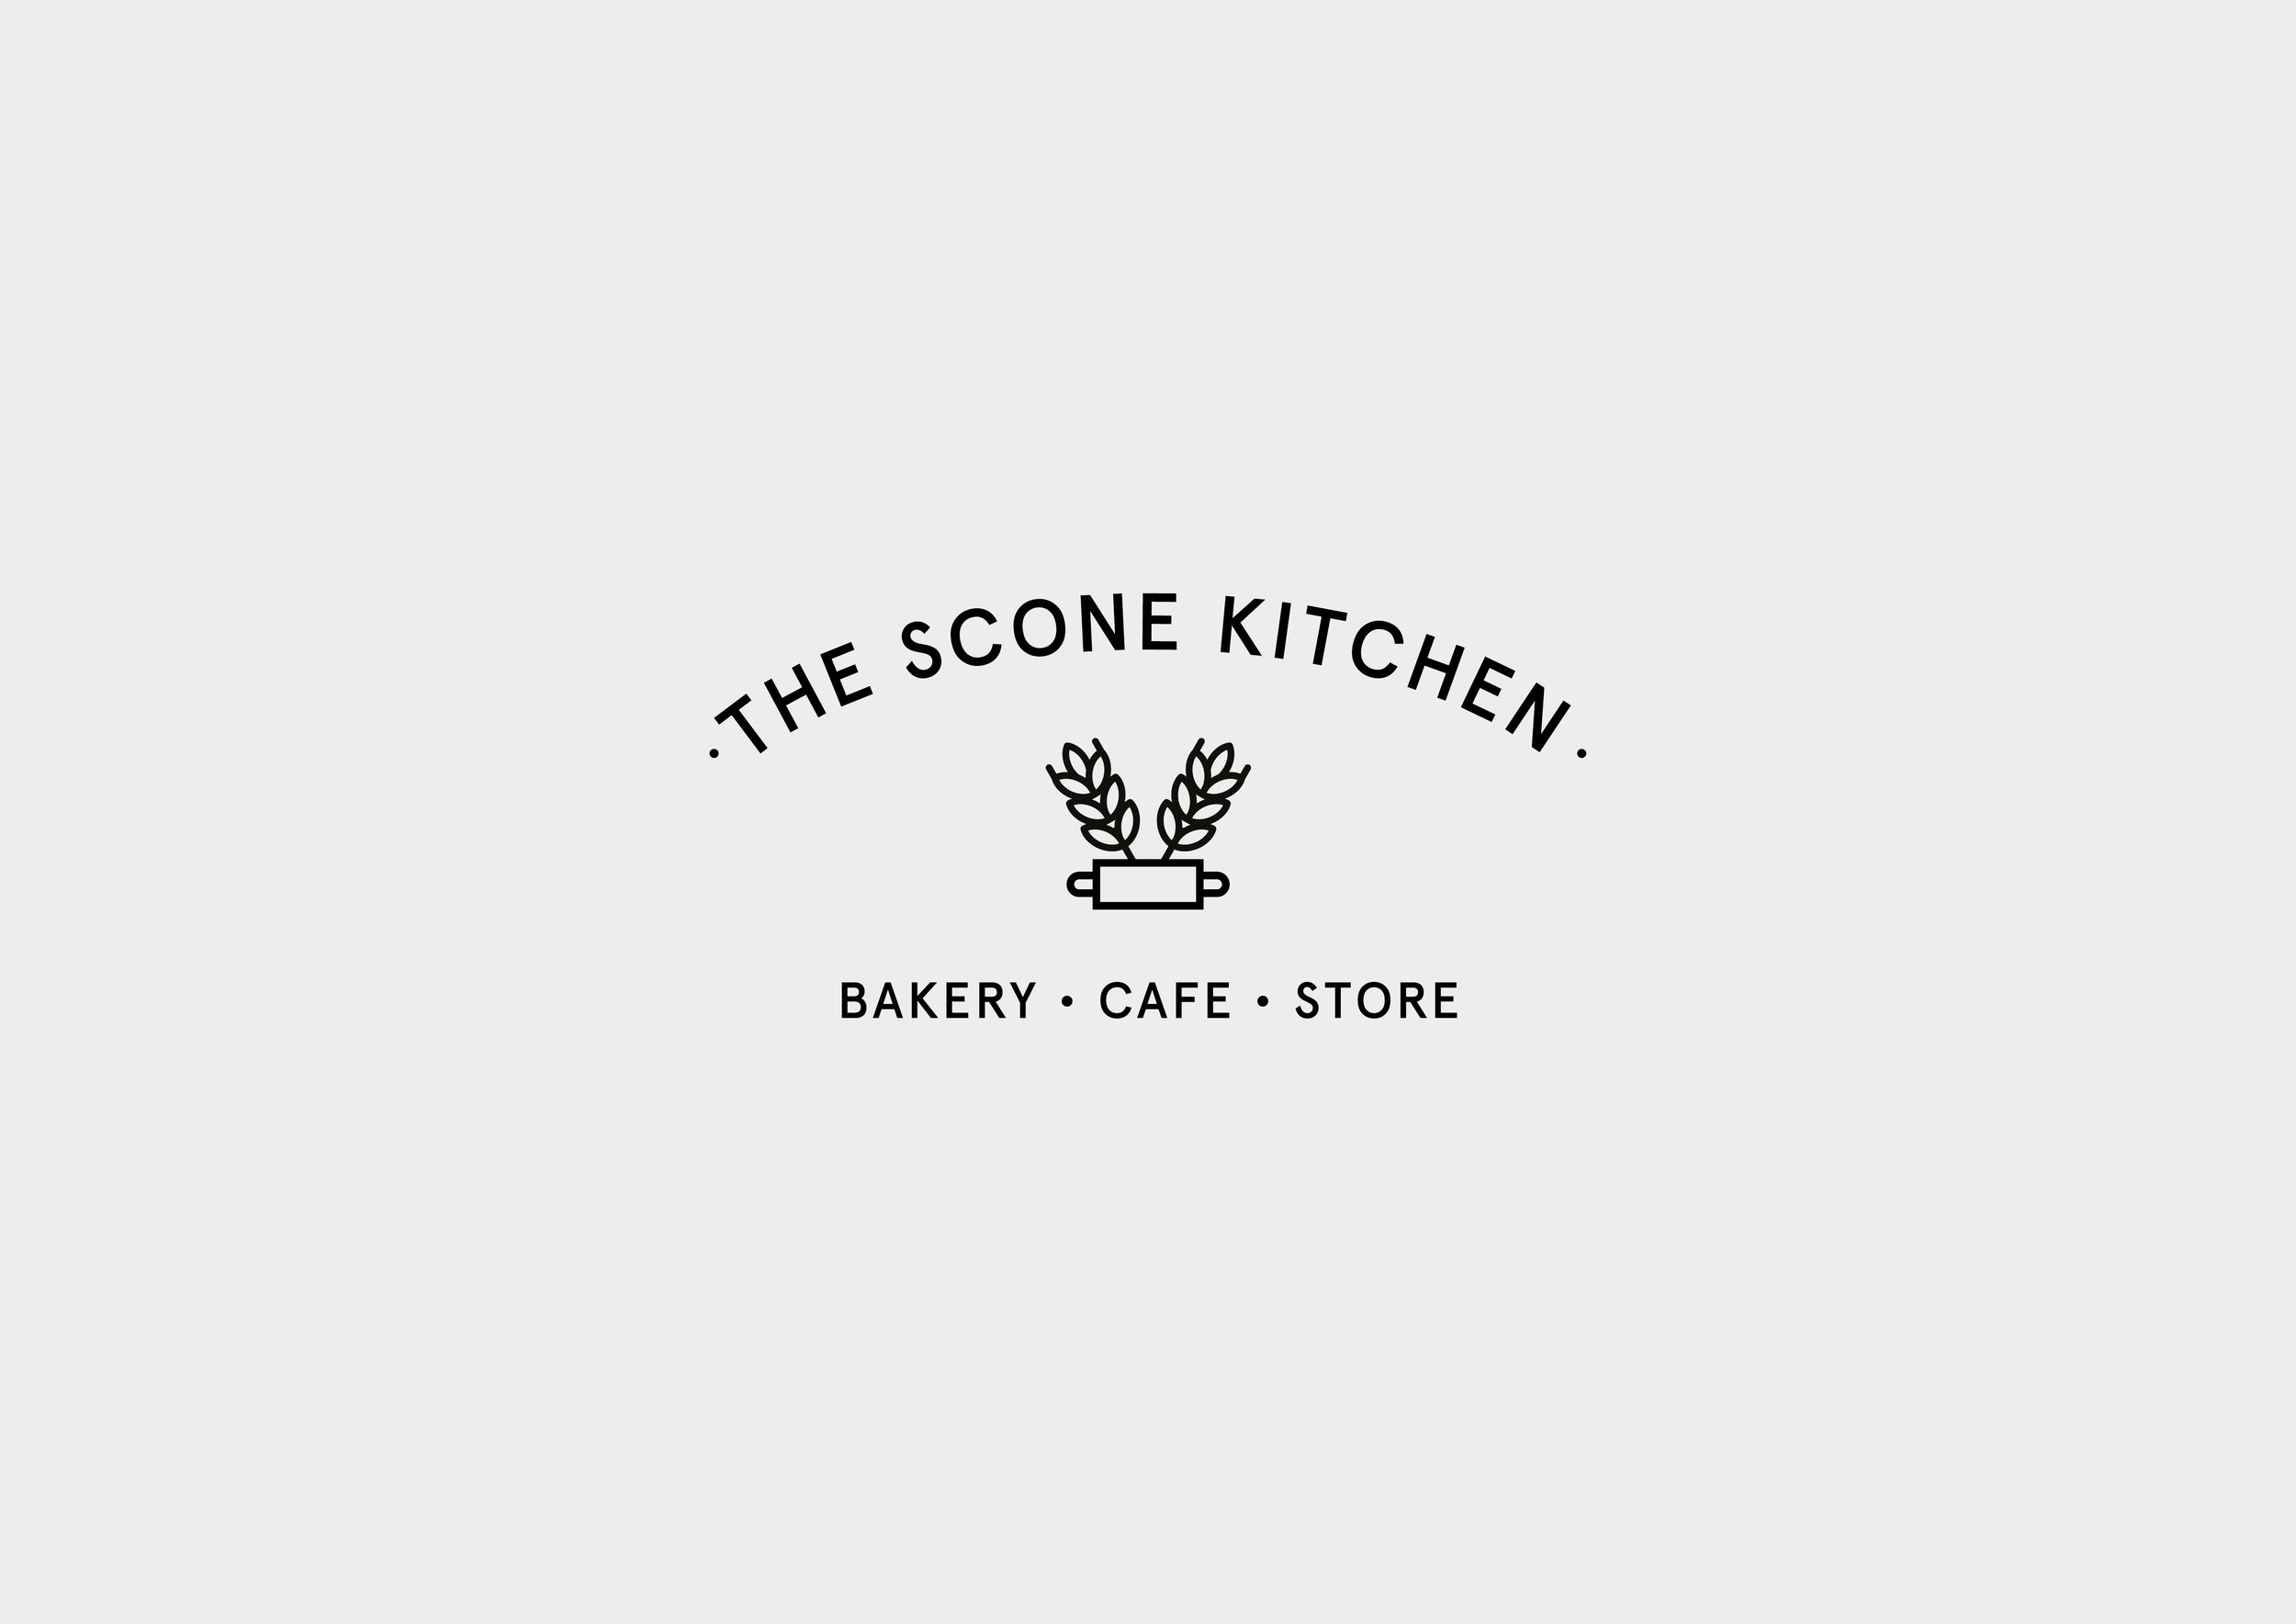 The Scone Kitchen cafe logo design